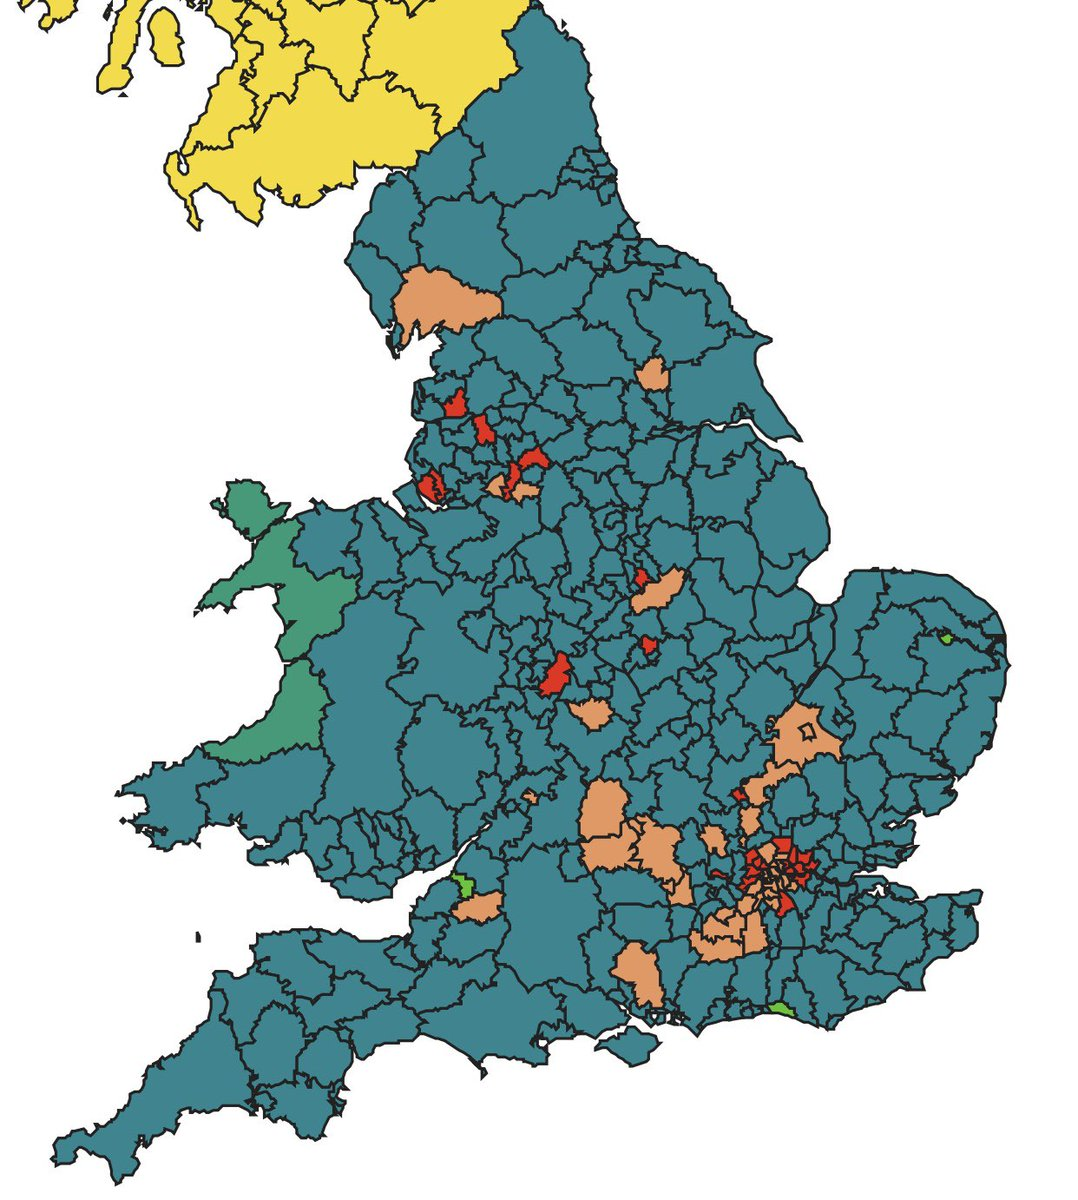 Map Of Just England.Matthew Stadlen On Twitter Just Look At This Map England Outside